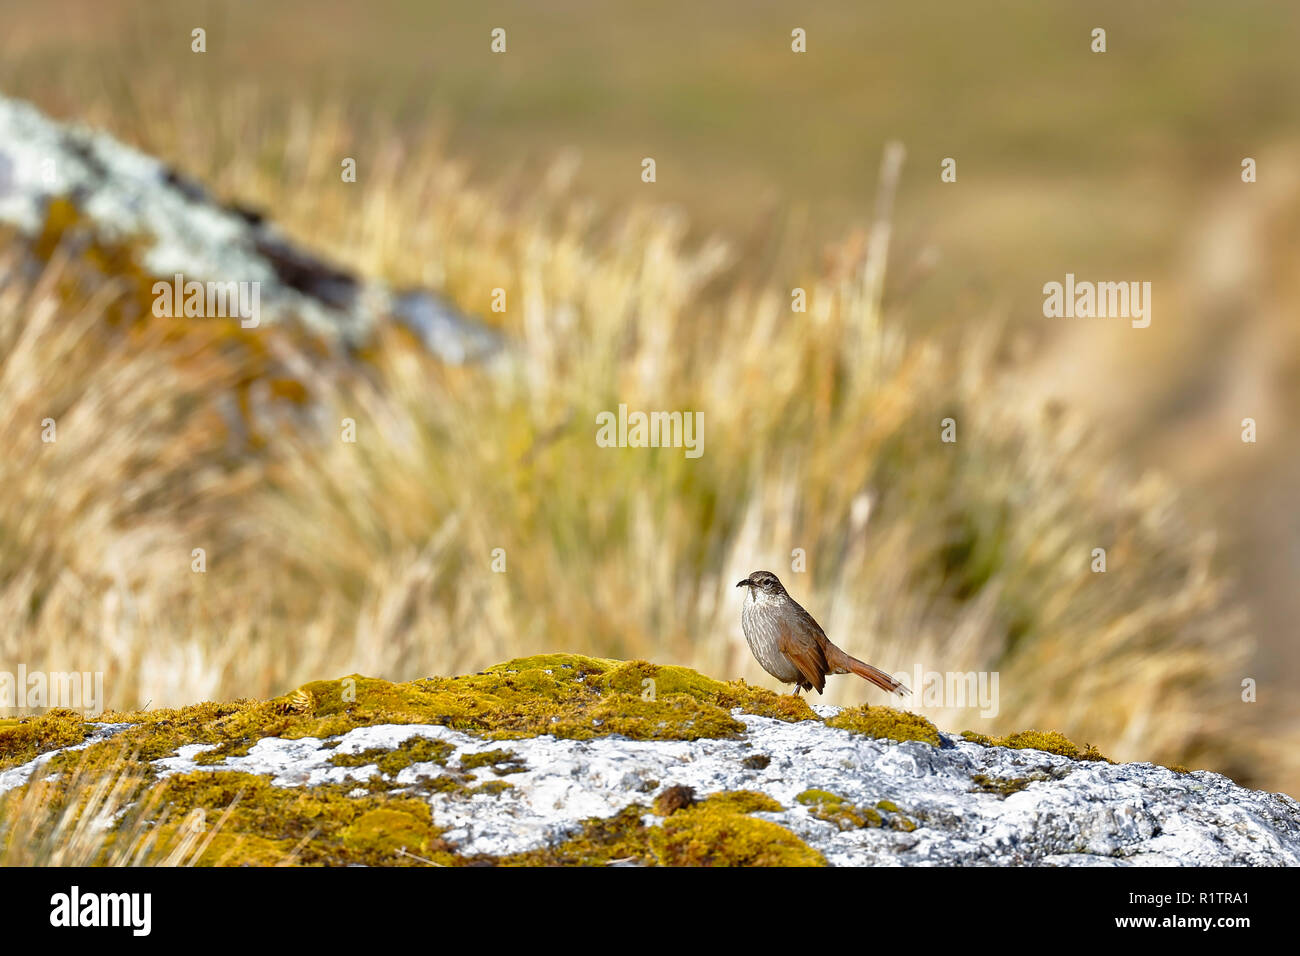 Curious specimen of a striated earthcreeper (Geocerthia serrana) perched on a rock in the skirts of the snowcapped cochas to more than 4000 msnm. Huan - Stock Image